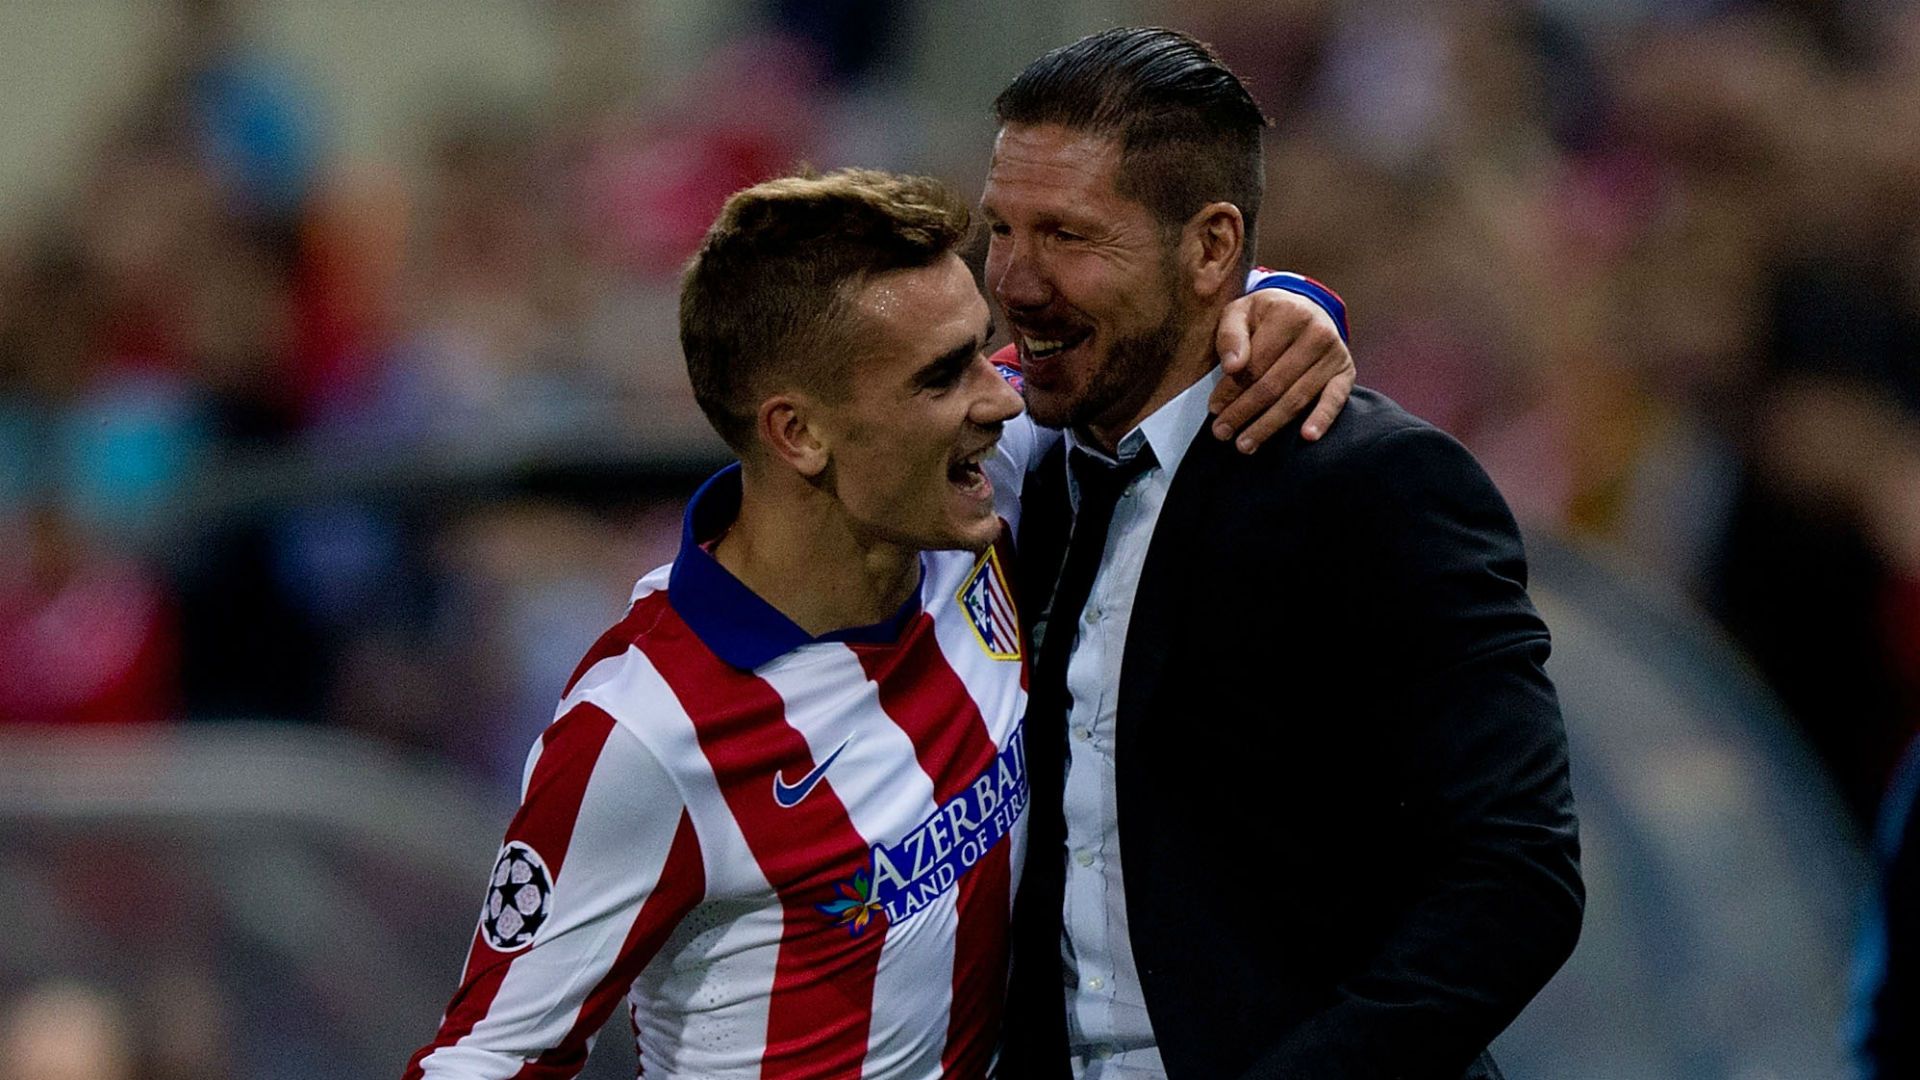 griezmannsimeone-cropped_2cnj7qkey5kl130m2te65ootf